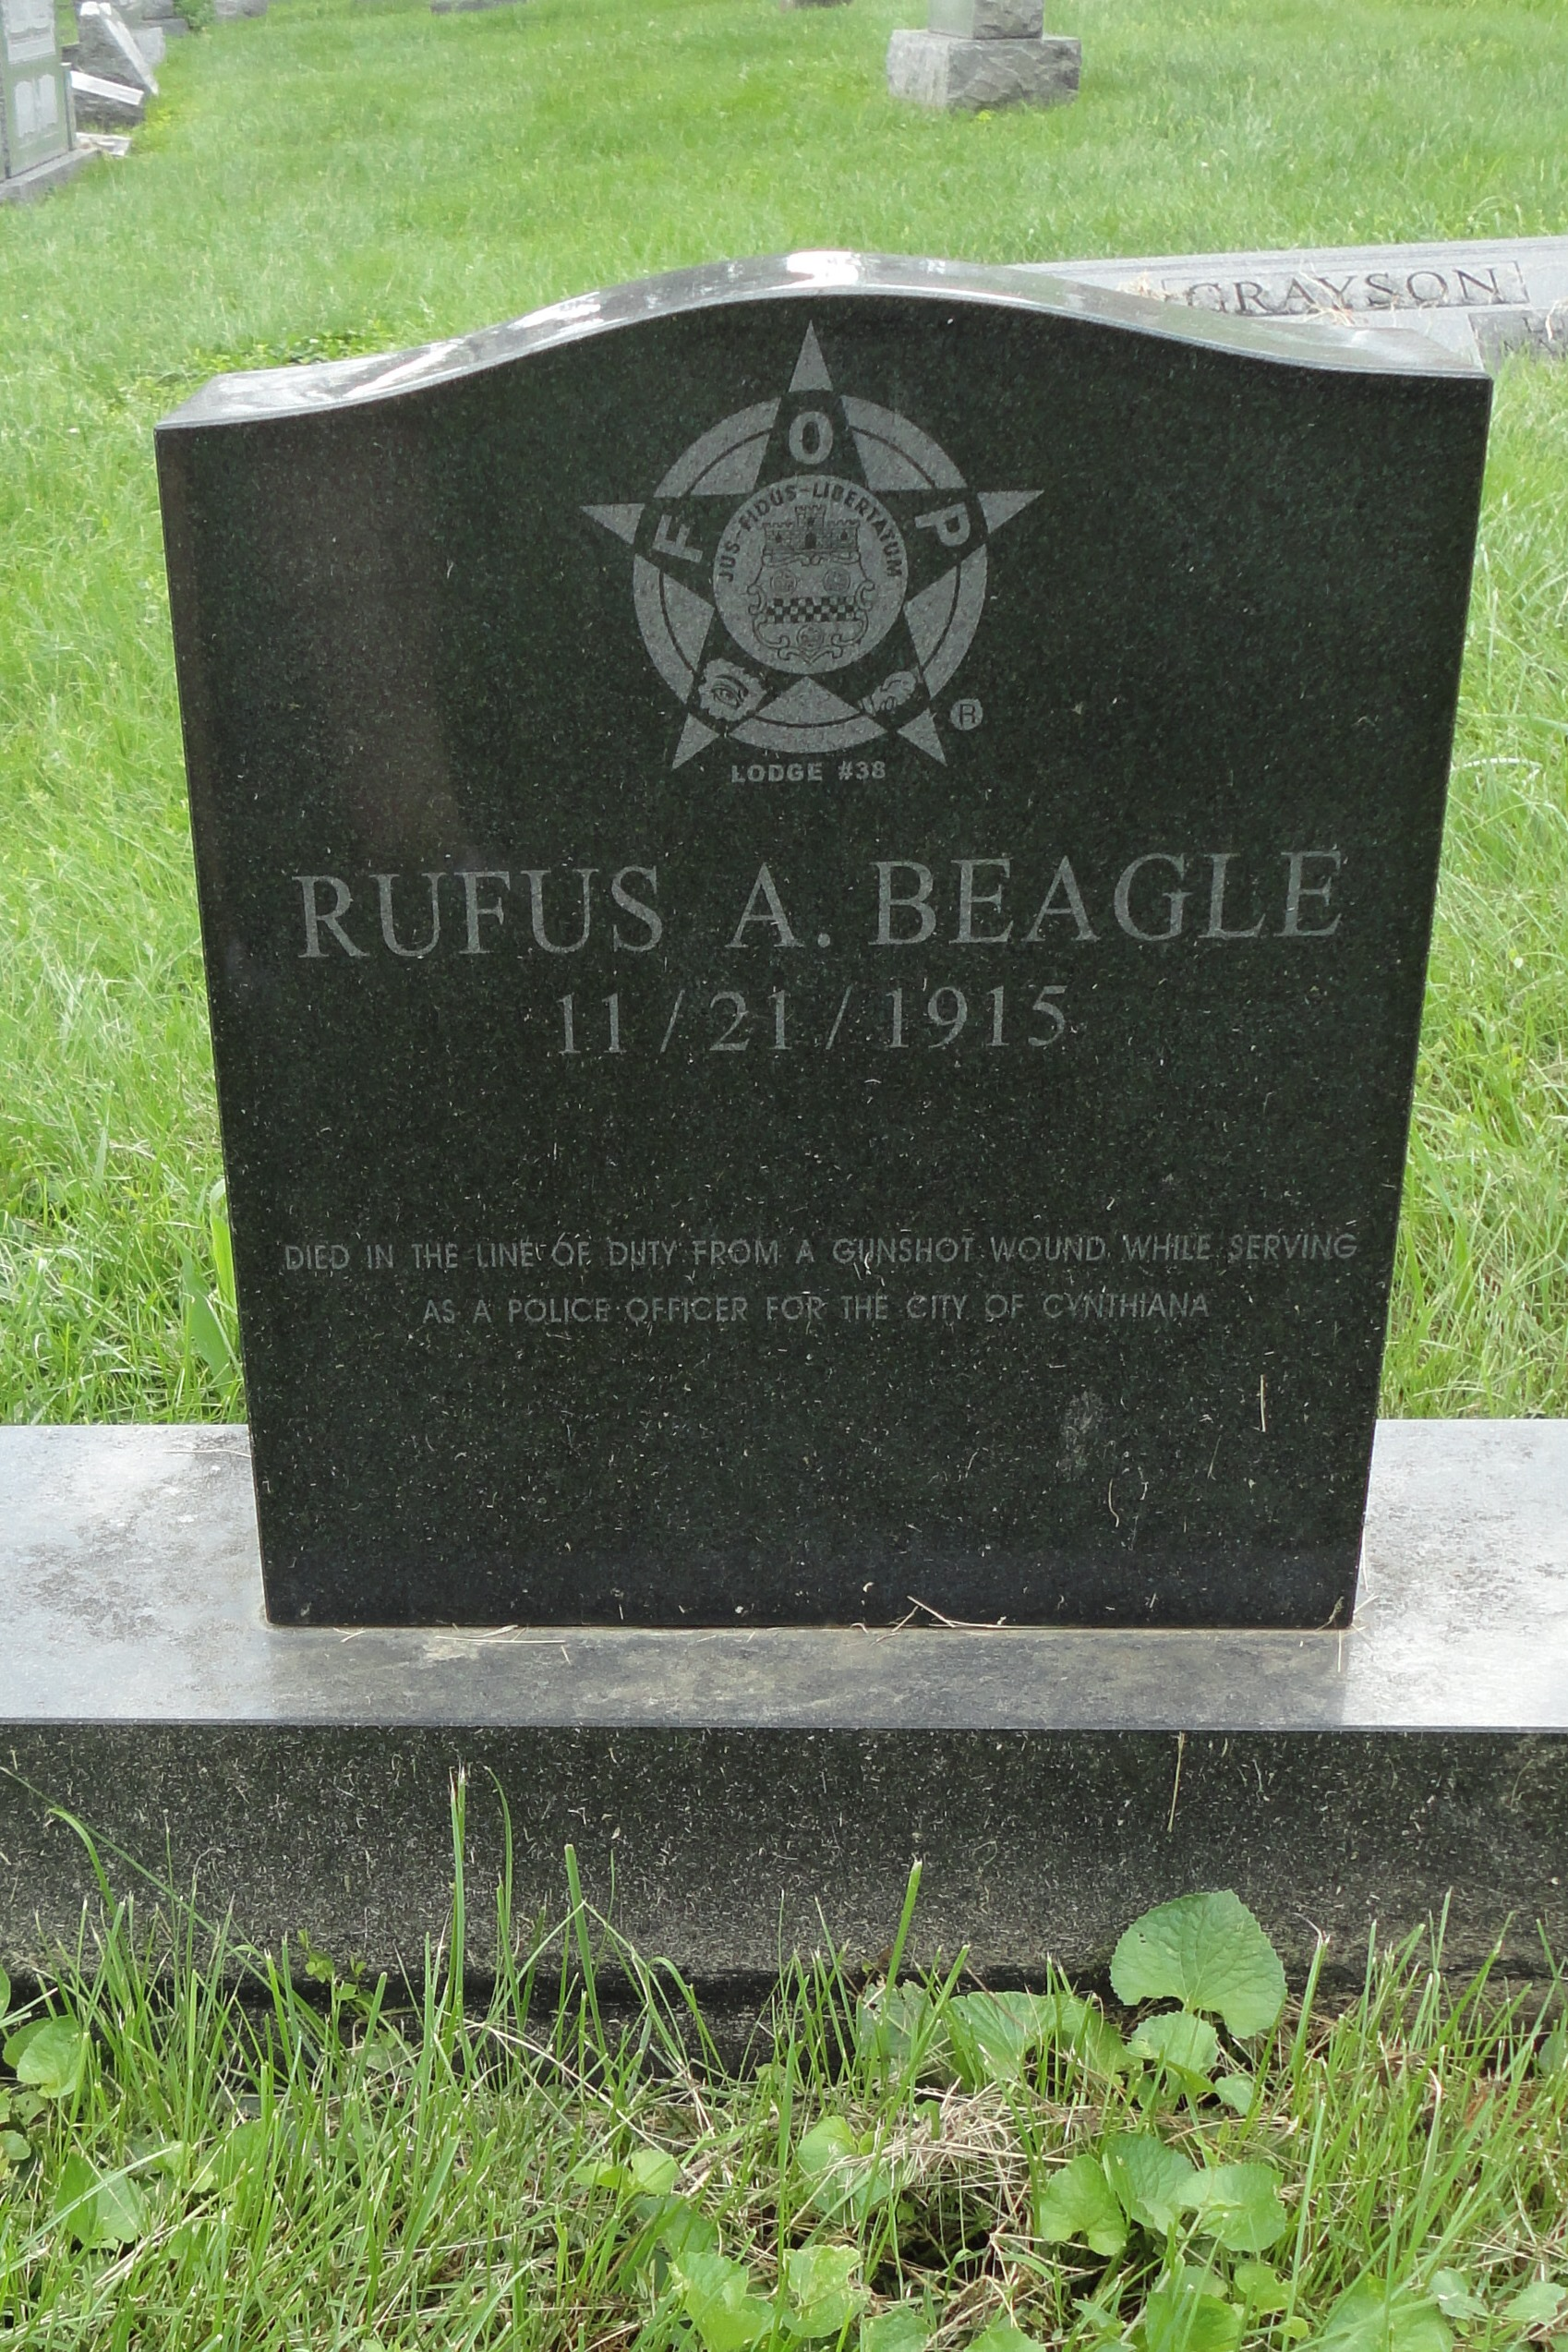 Officer Rufus A. Beagle | Cynthiana Police Department, Kentucky